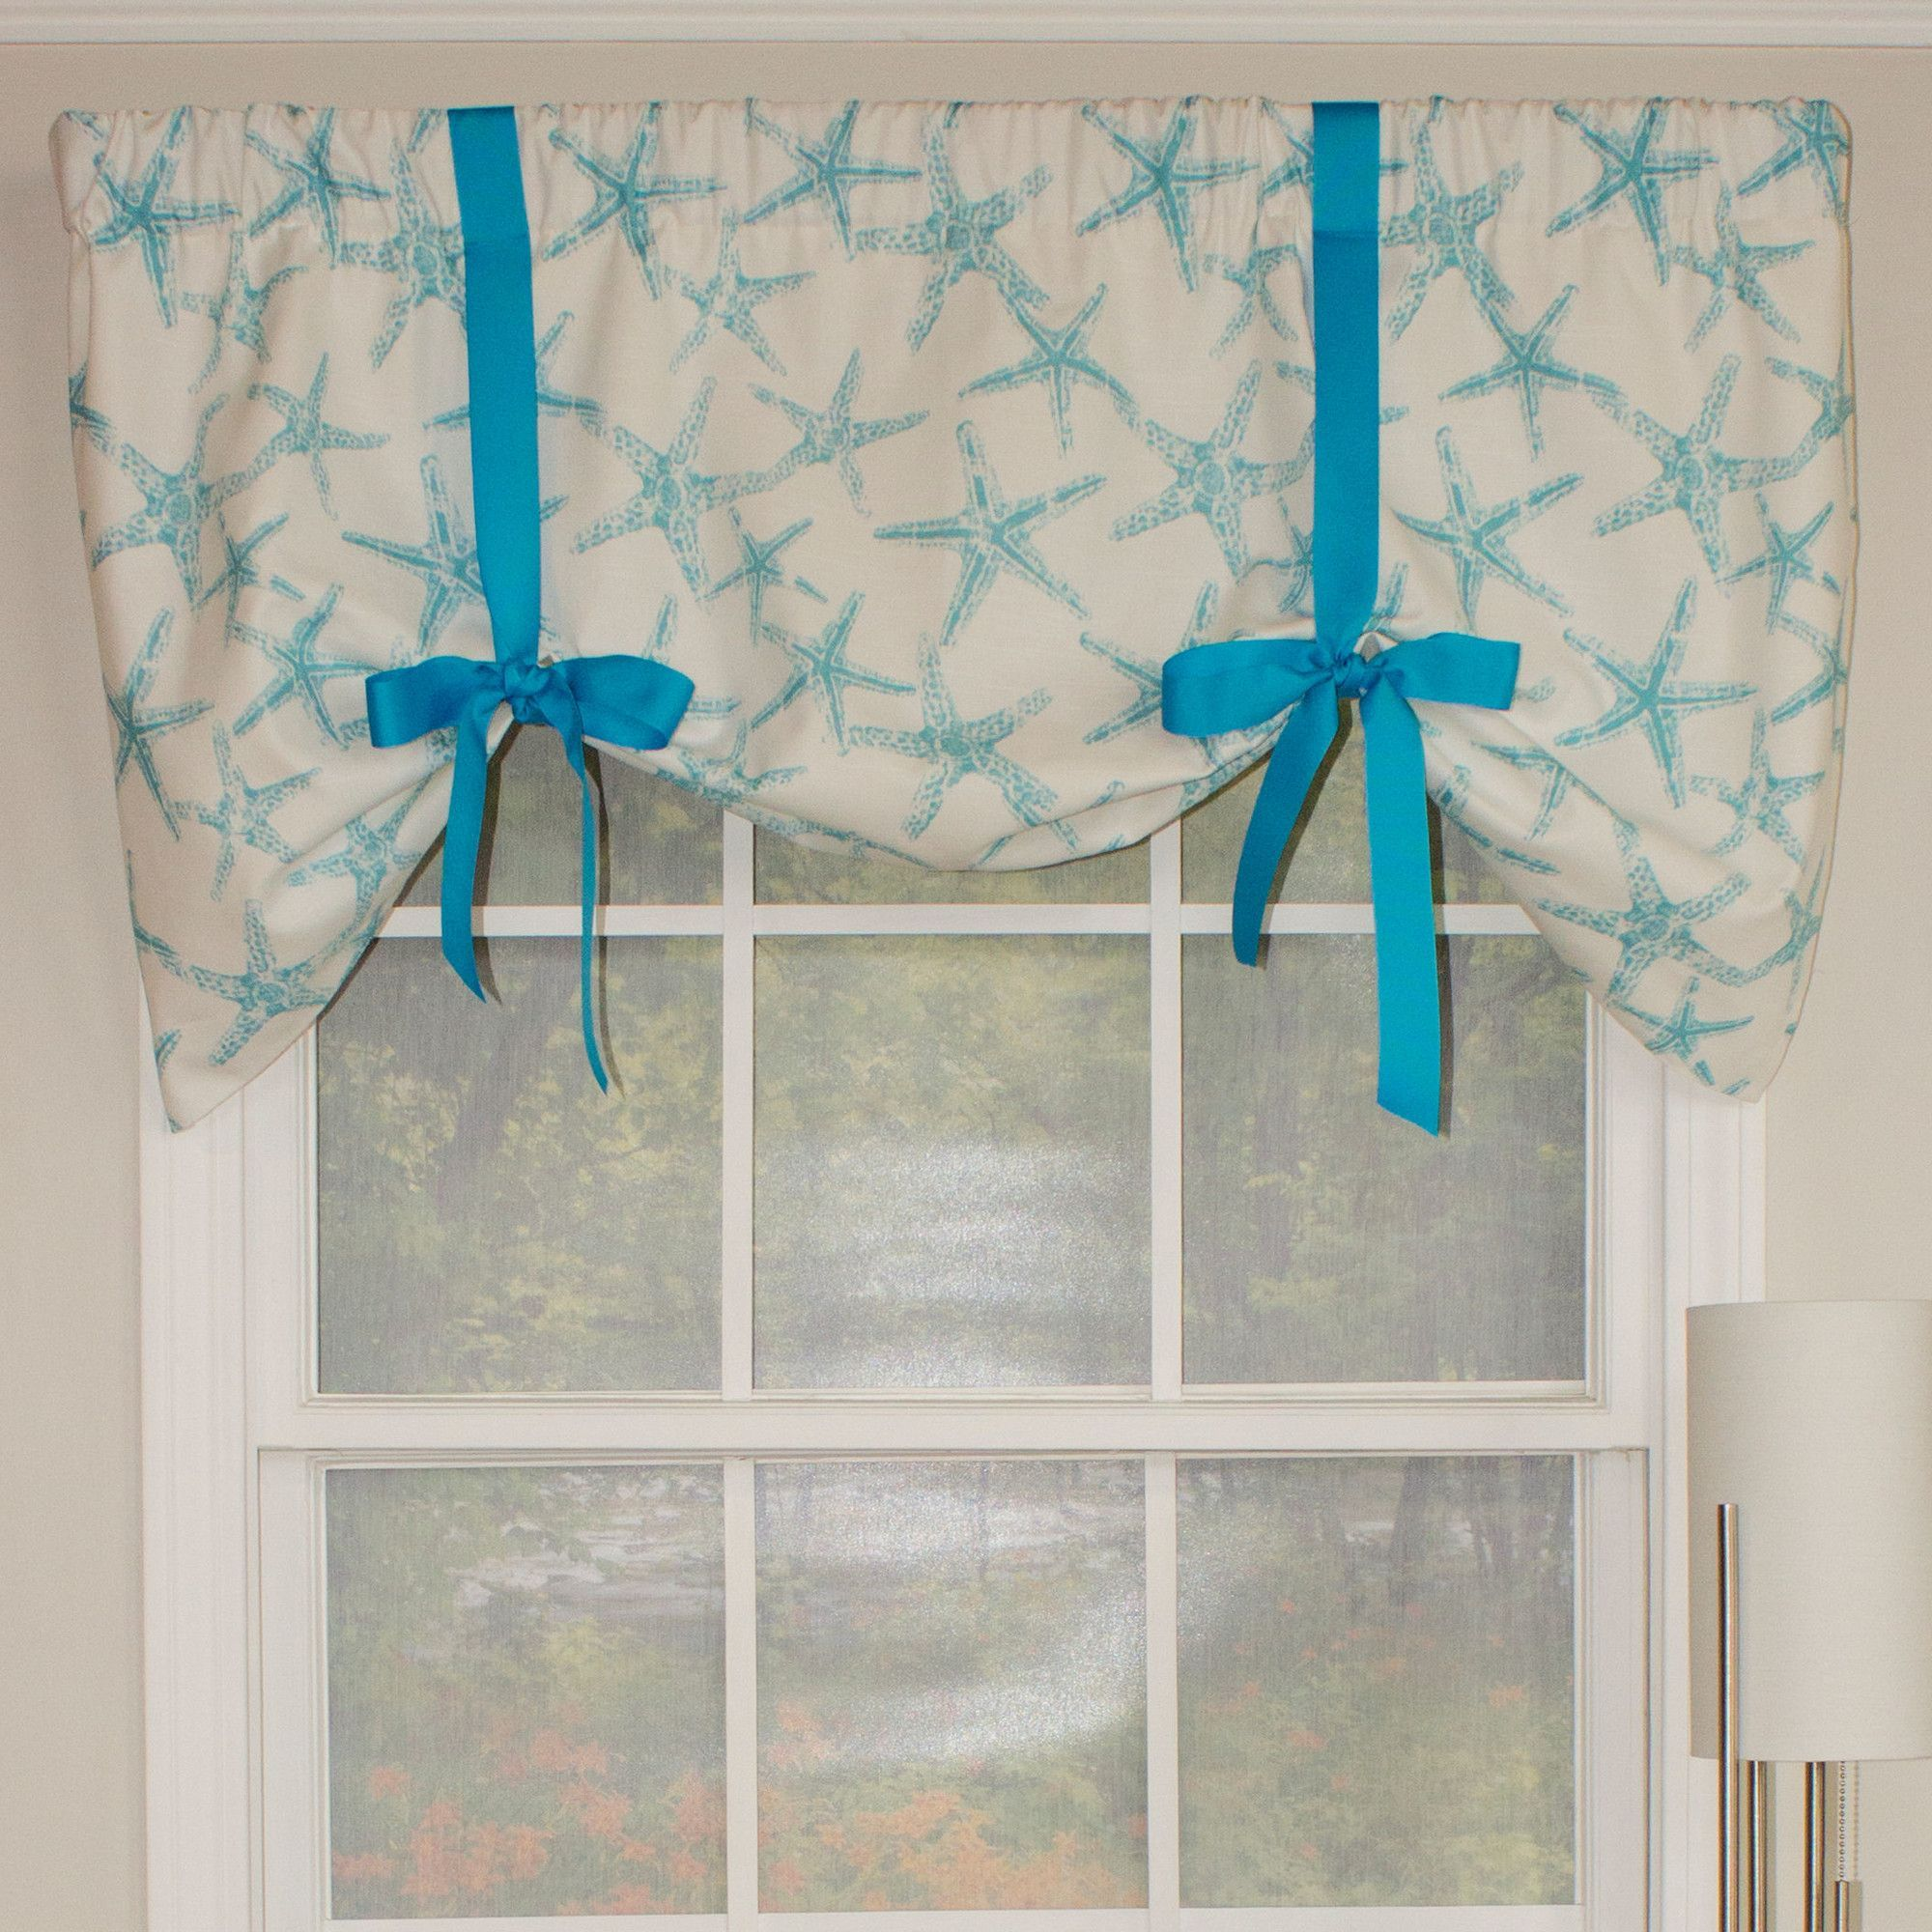 The Fabric Used To Make The Window Shades Is Duralee 21037